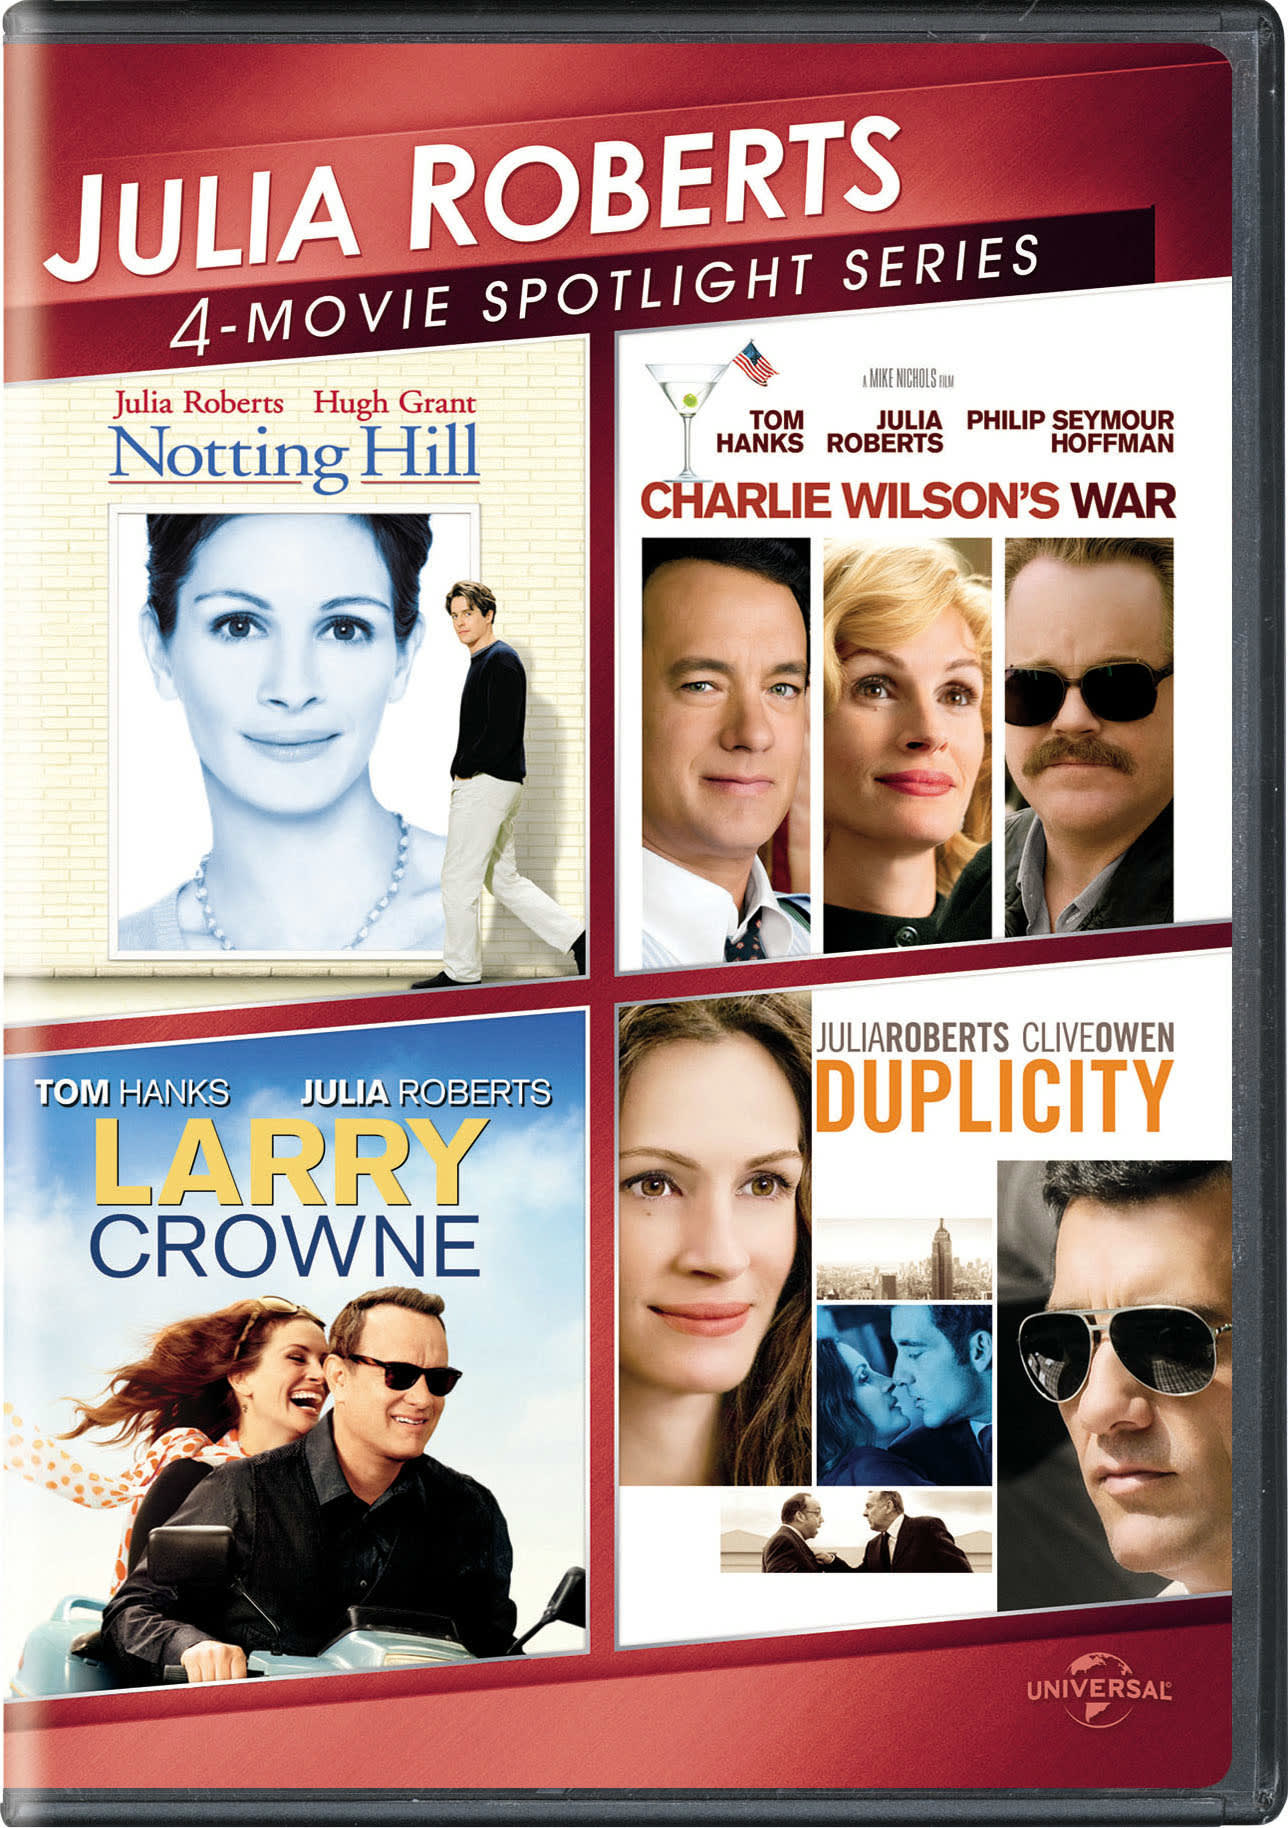 Julia Roberts 4-Movie Spotlight Series (Box Set) [DVD]